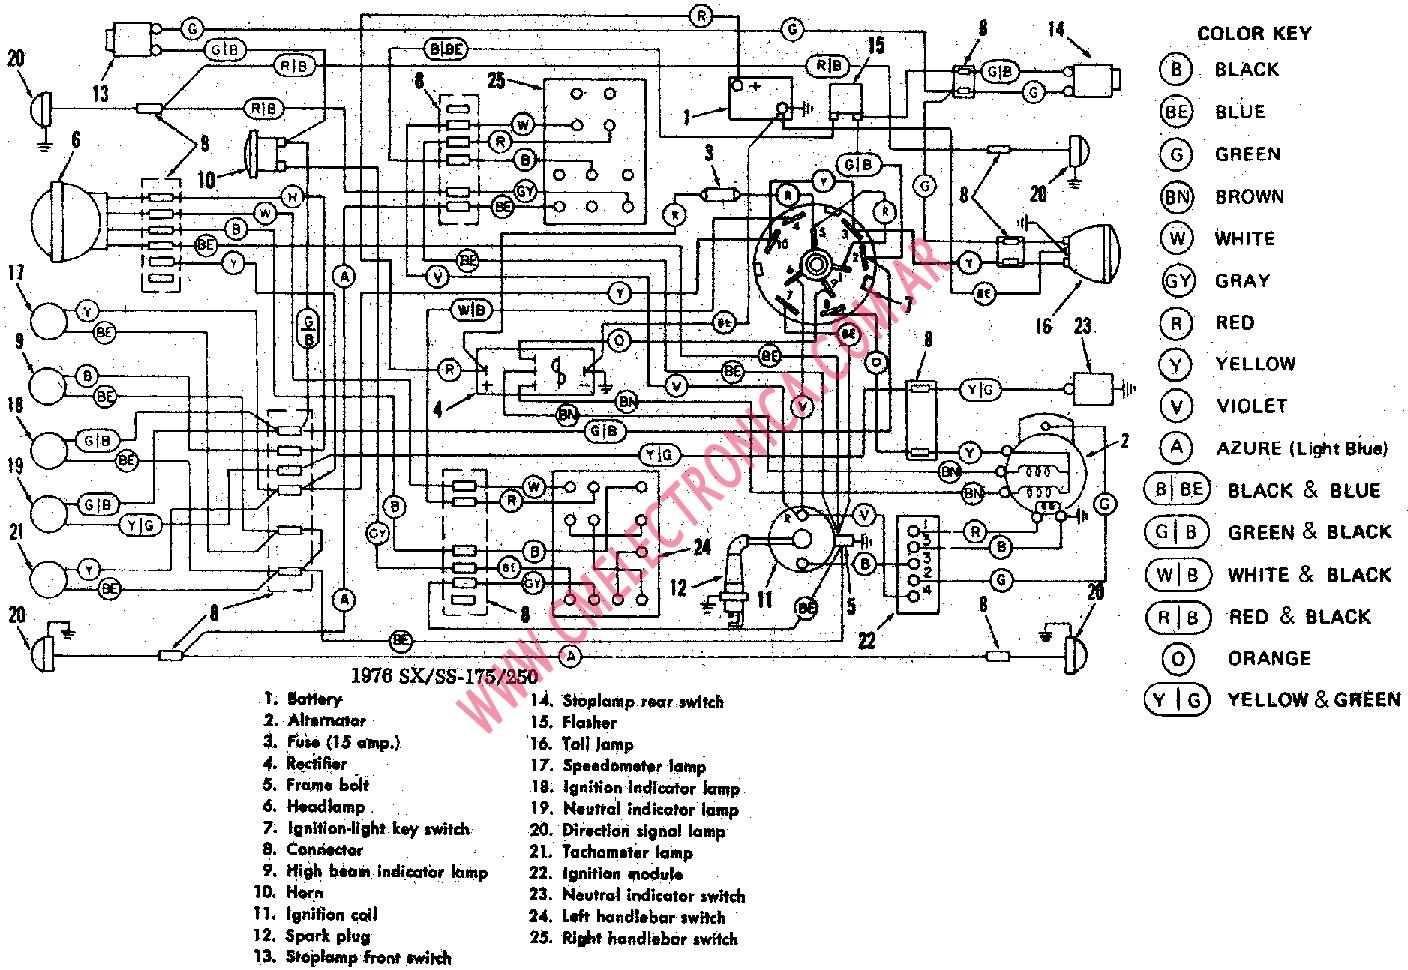 hight resolution of harley davidson touring wiring diagram imageresizertool com 1993 ford mustang fuse box diagram 1993 ford mustang